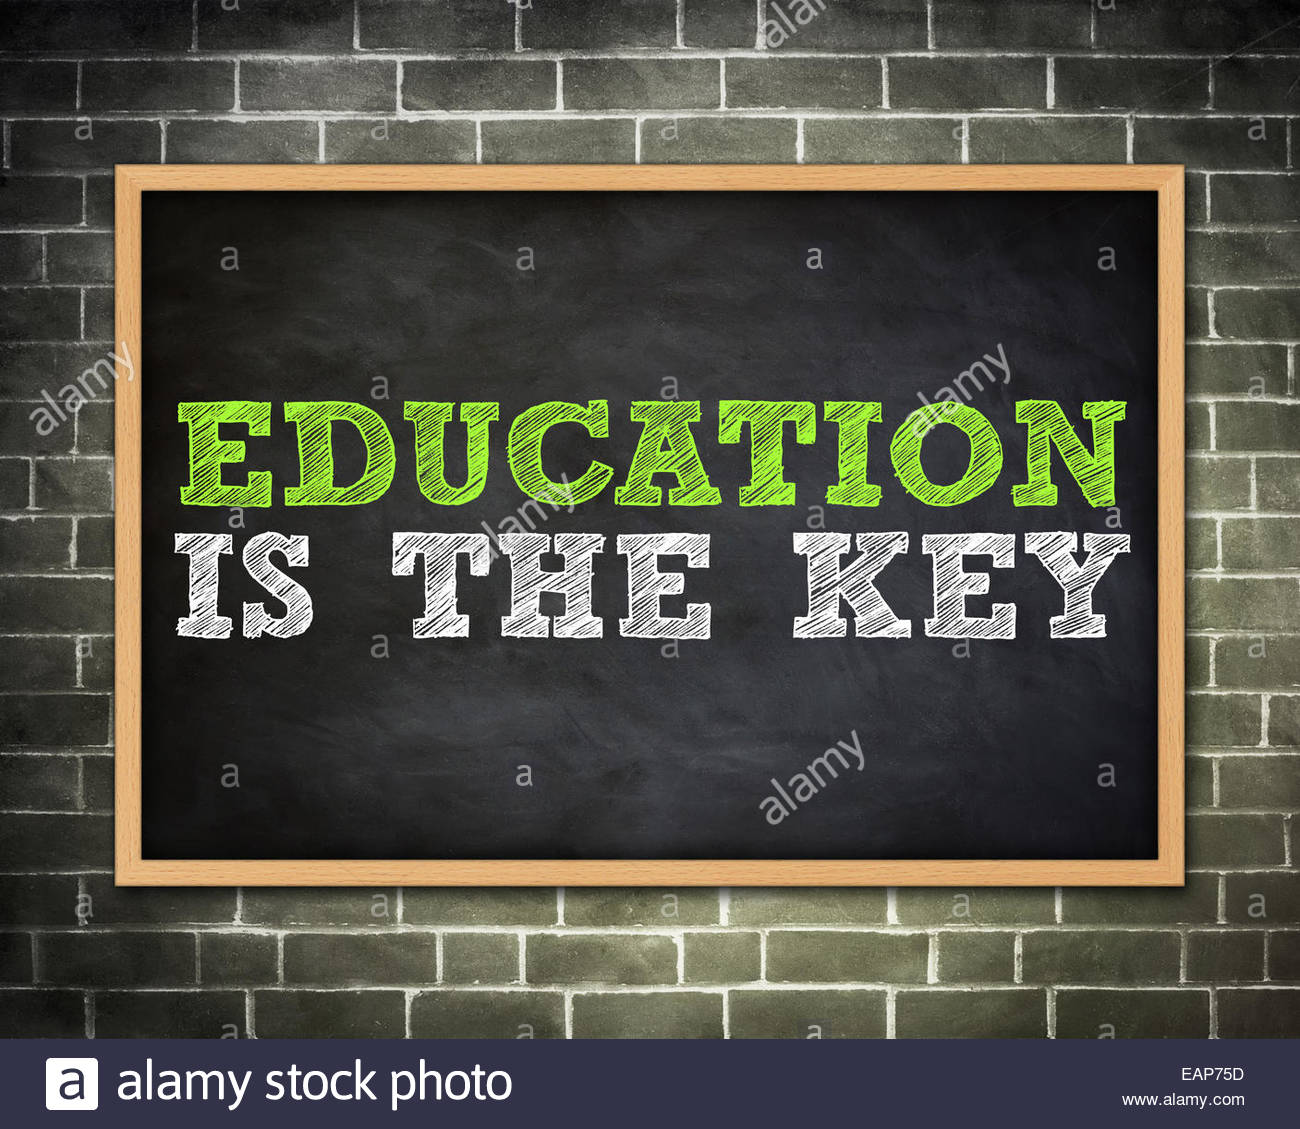 EDUCATION IS THE KEY - blackboard concept - Stock Image